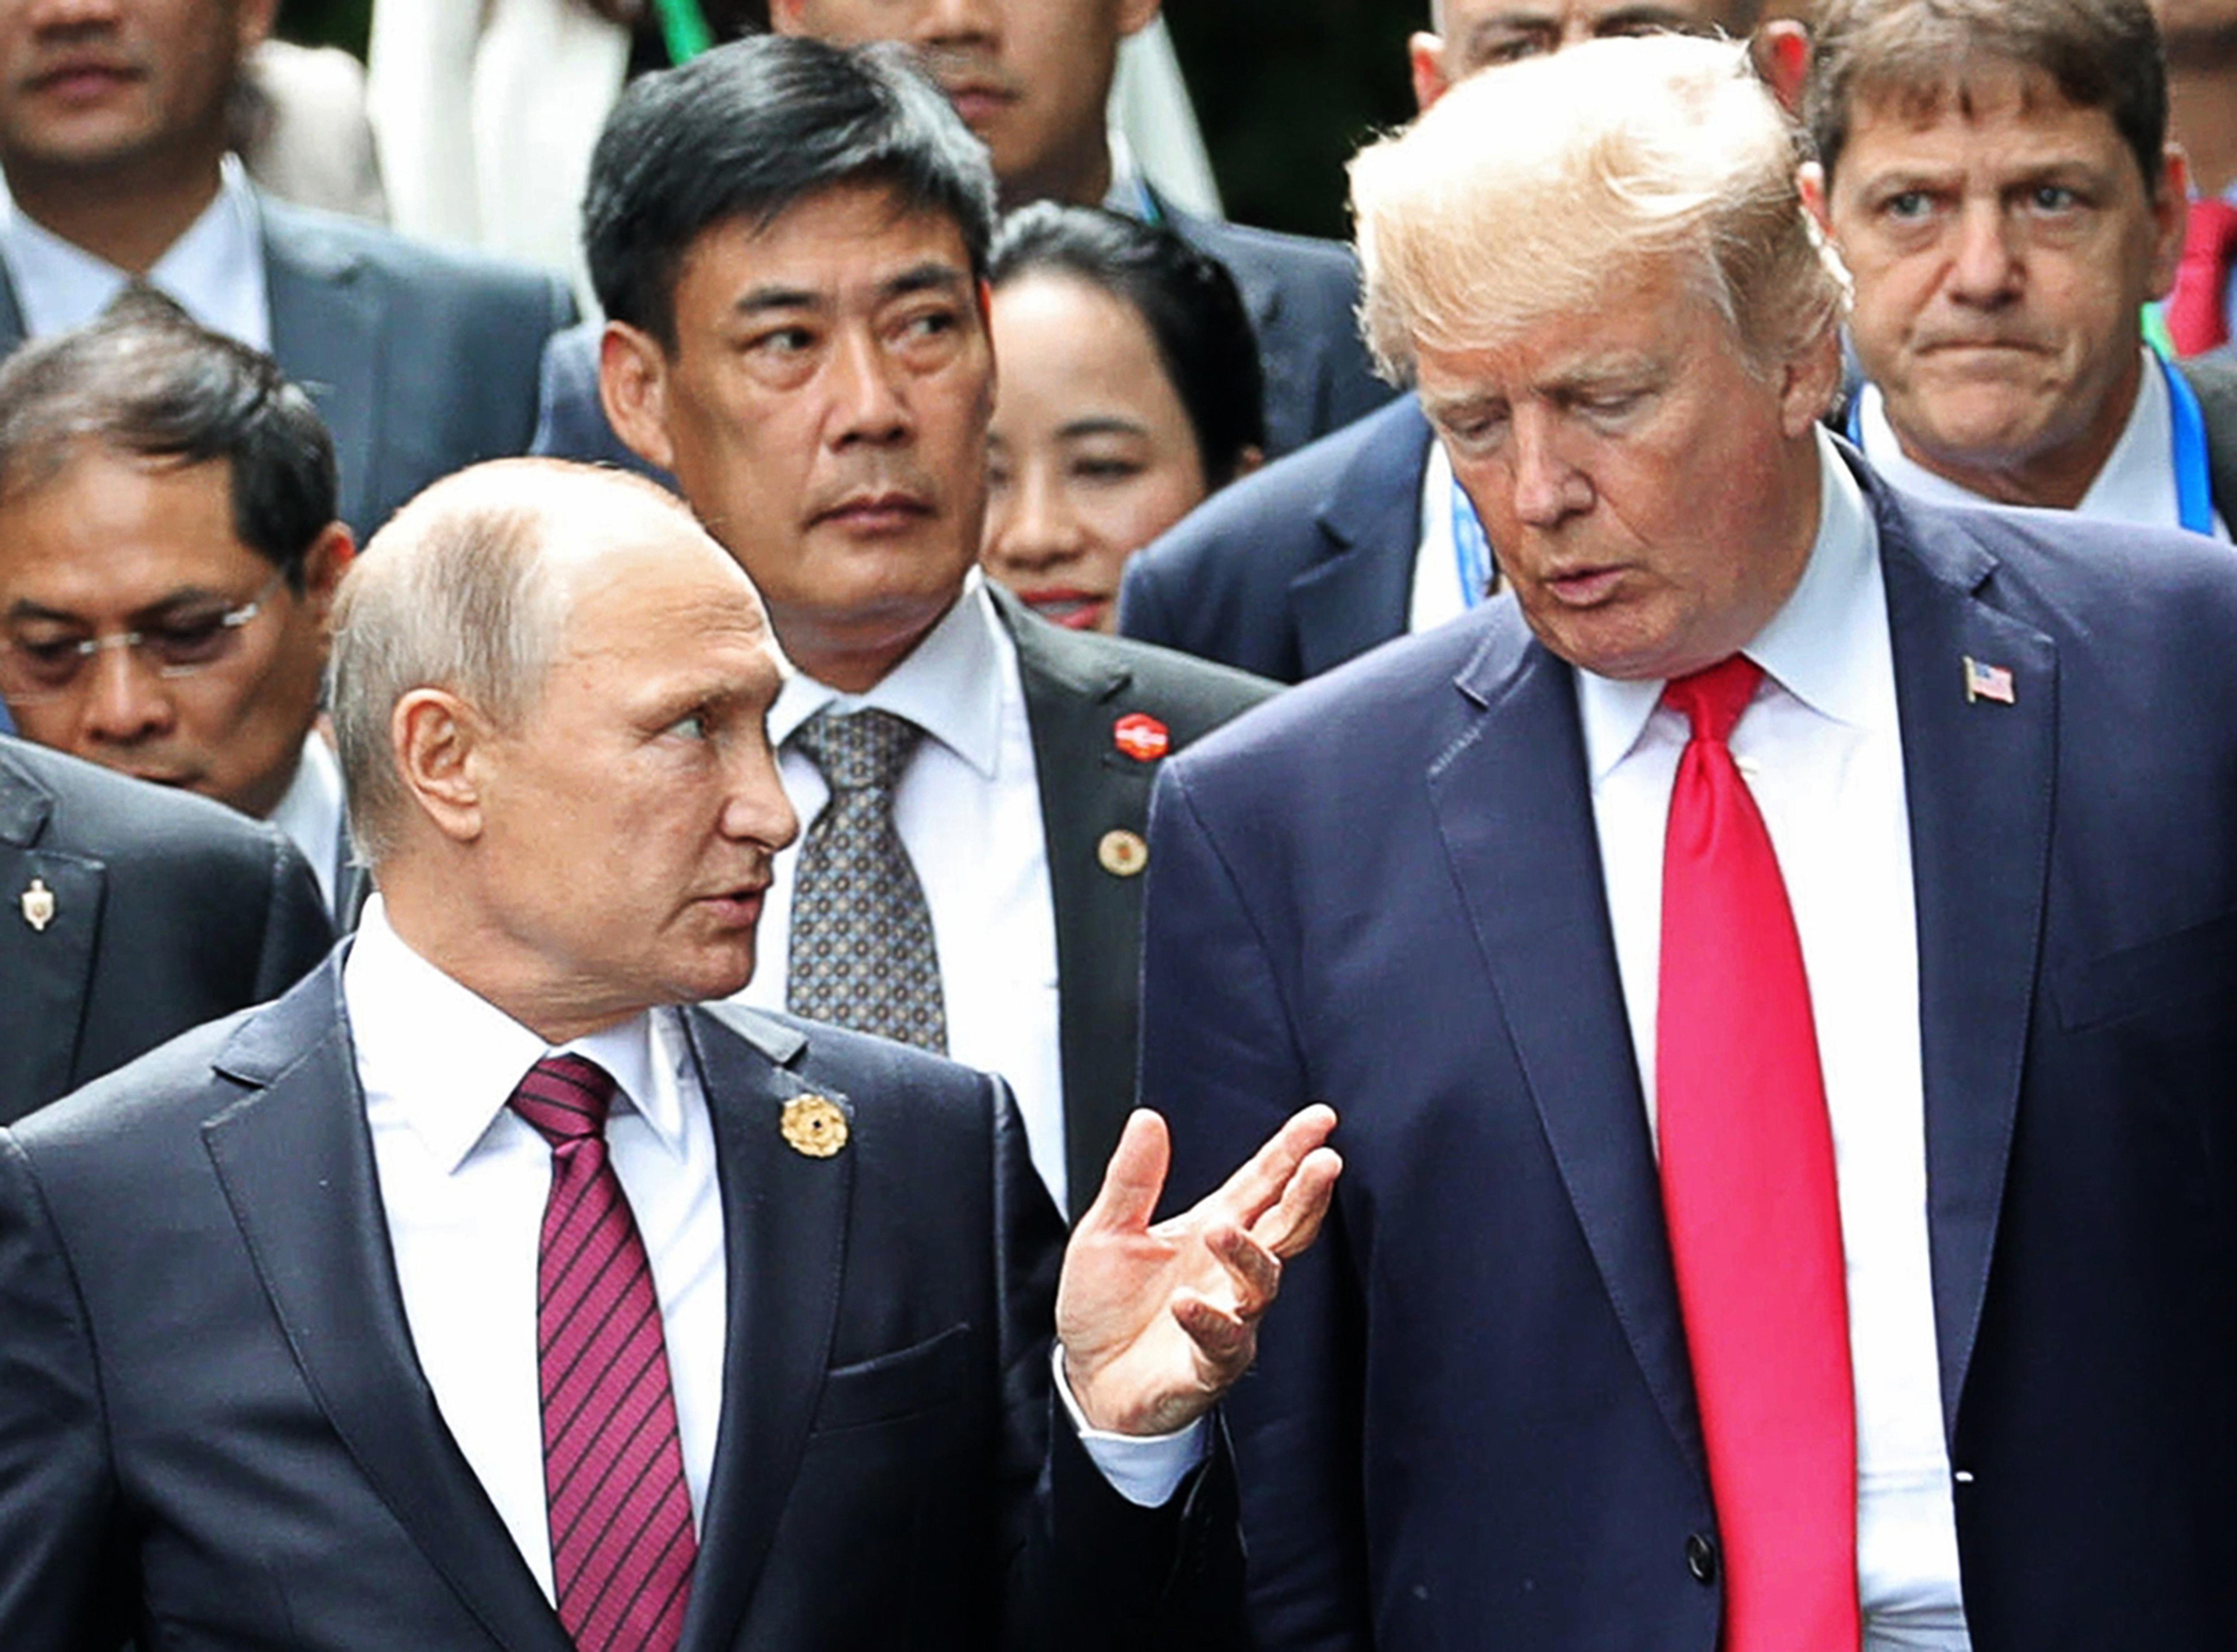 Trump Wish For Warm Putin Ties Highlights Policy Disconnect